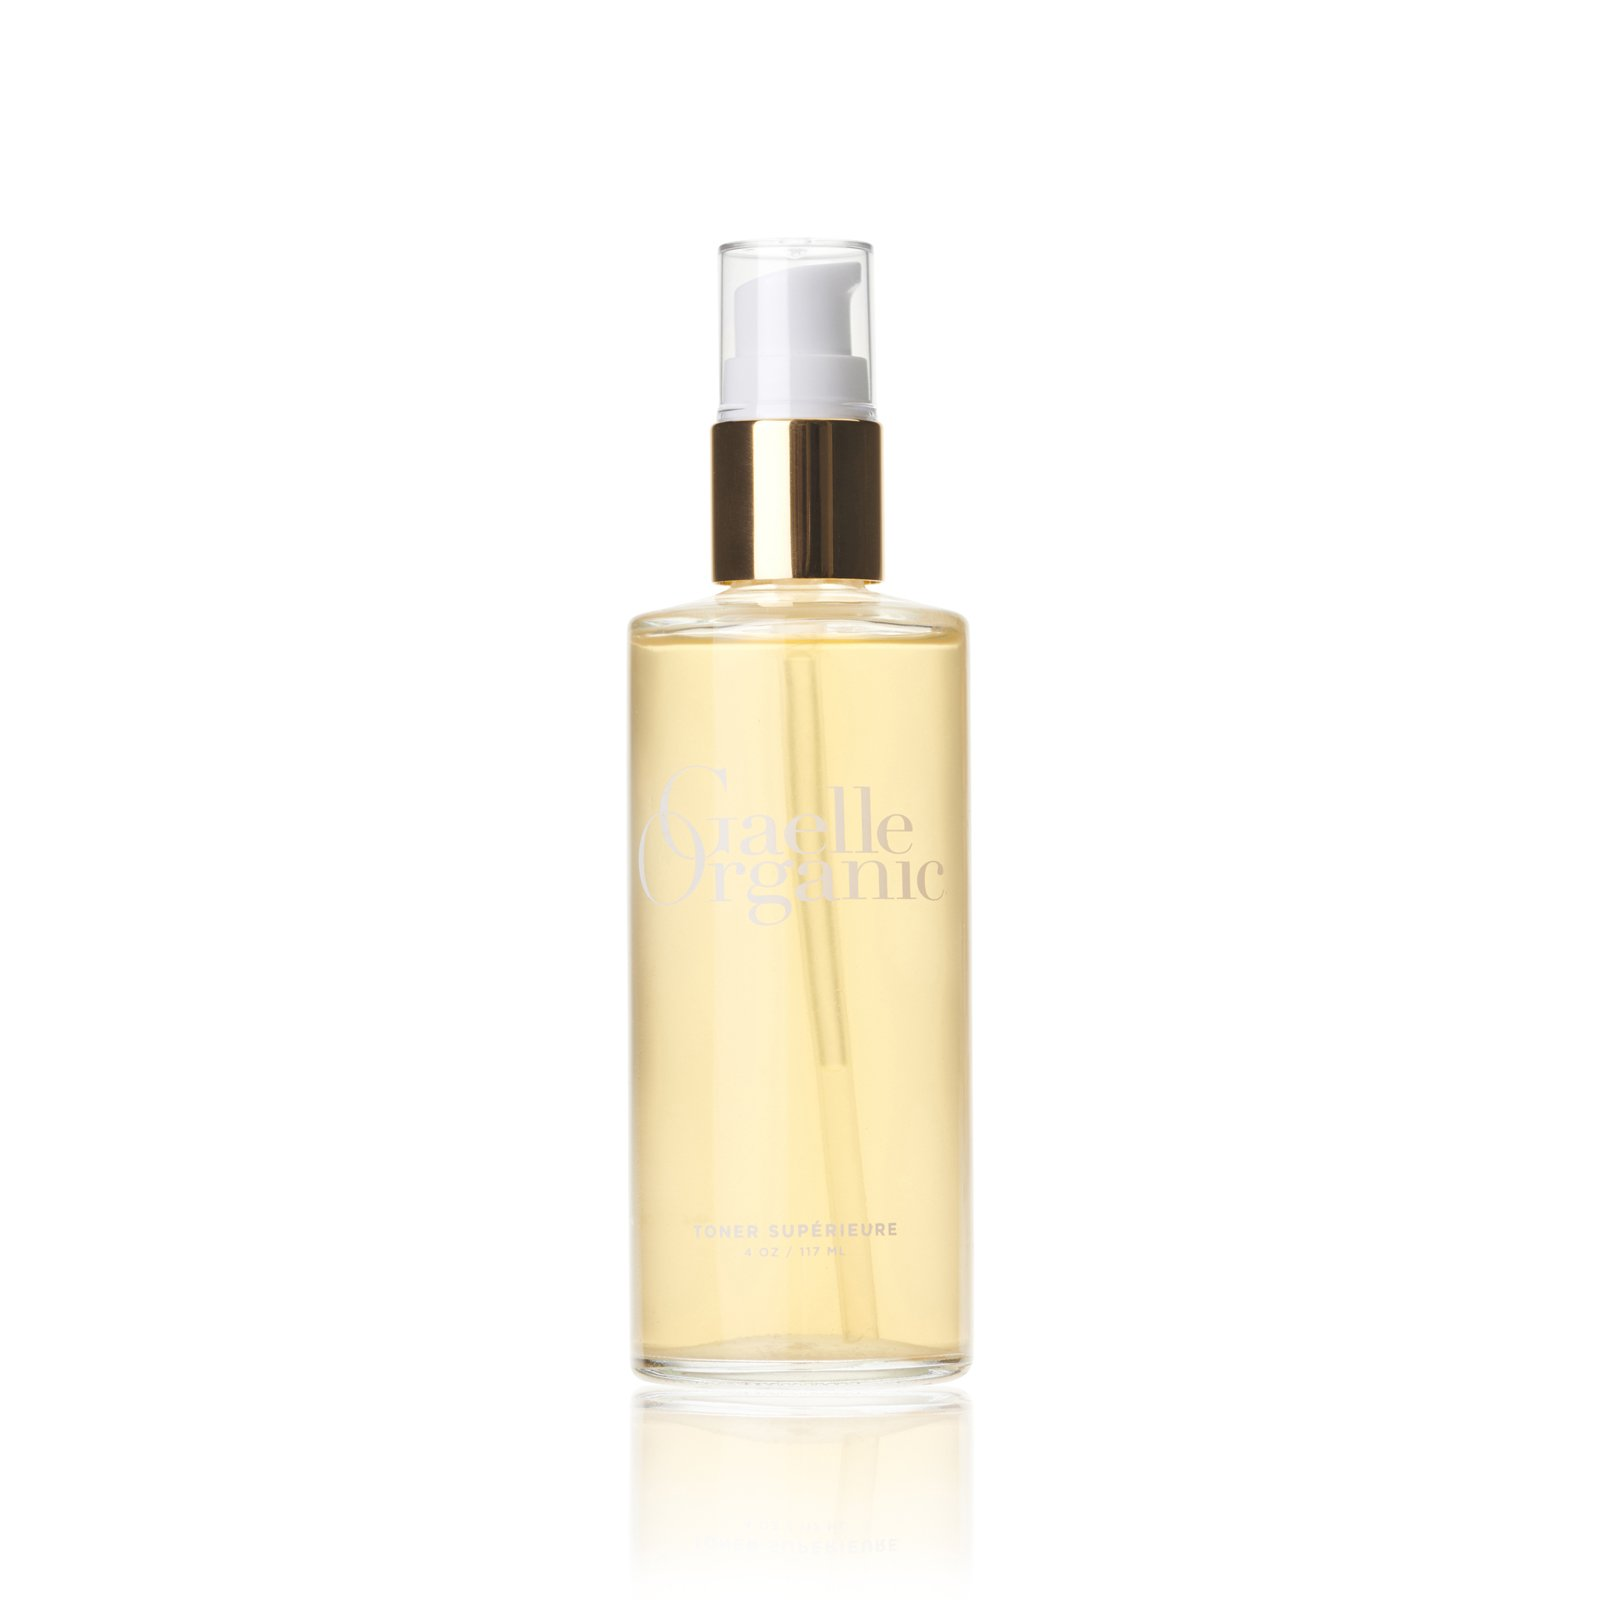 Toner Supérieure from Gaelle Organic